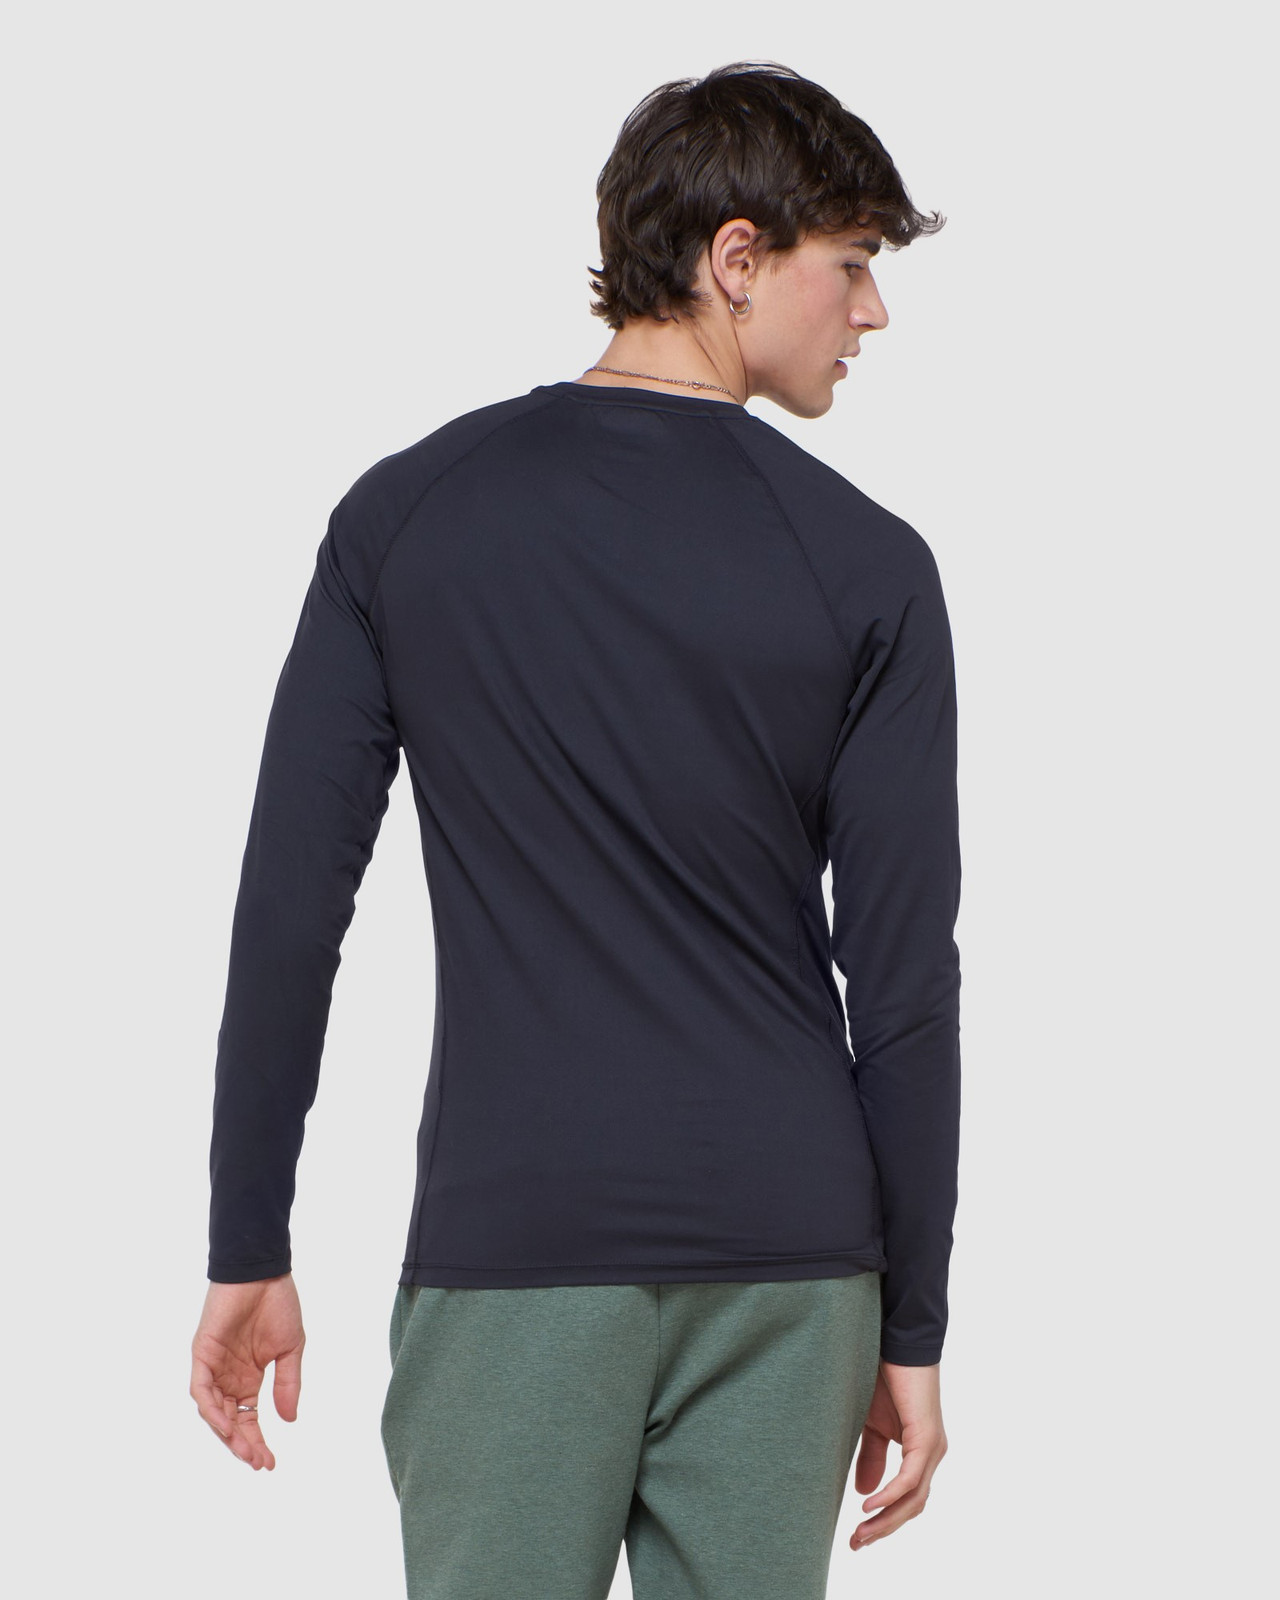 Superdry Mens CREW NECK CARBON BASE LAYER Black Long Sleeve Top 4